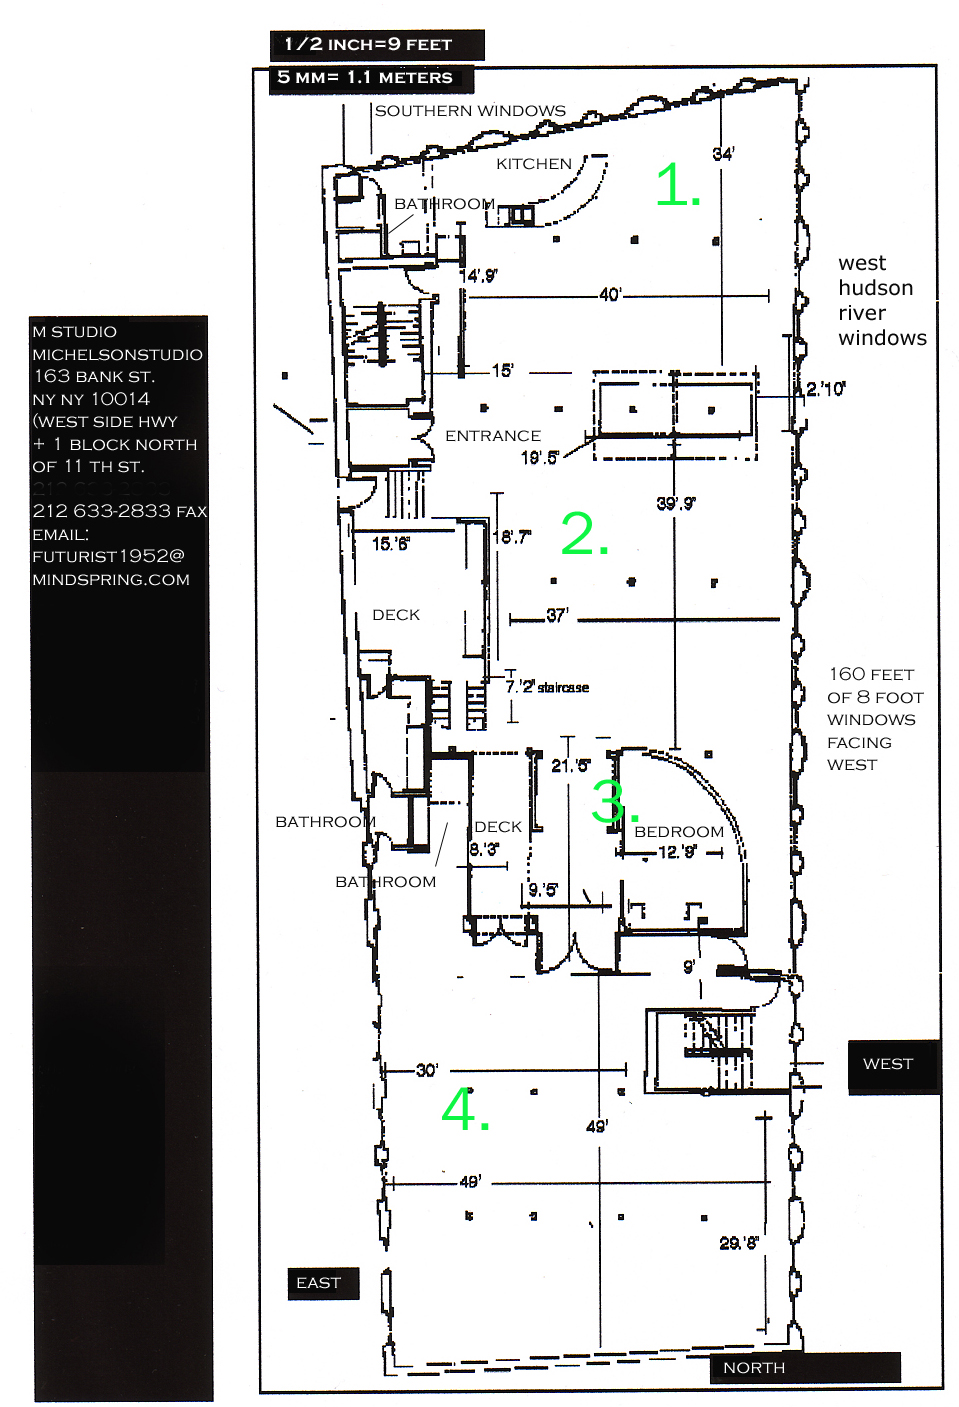 floorplan hi res.jpg